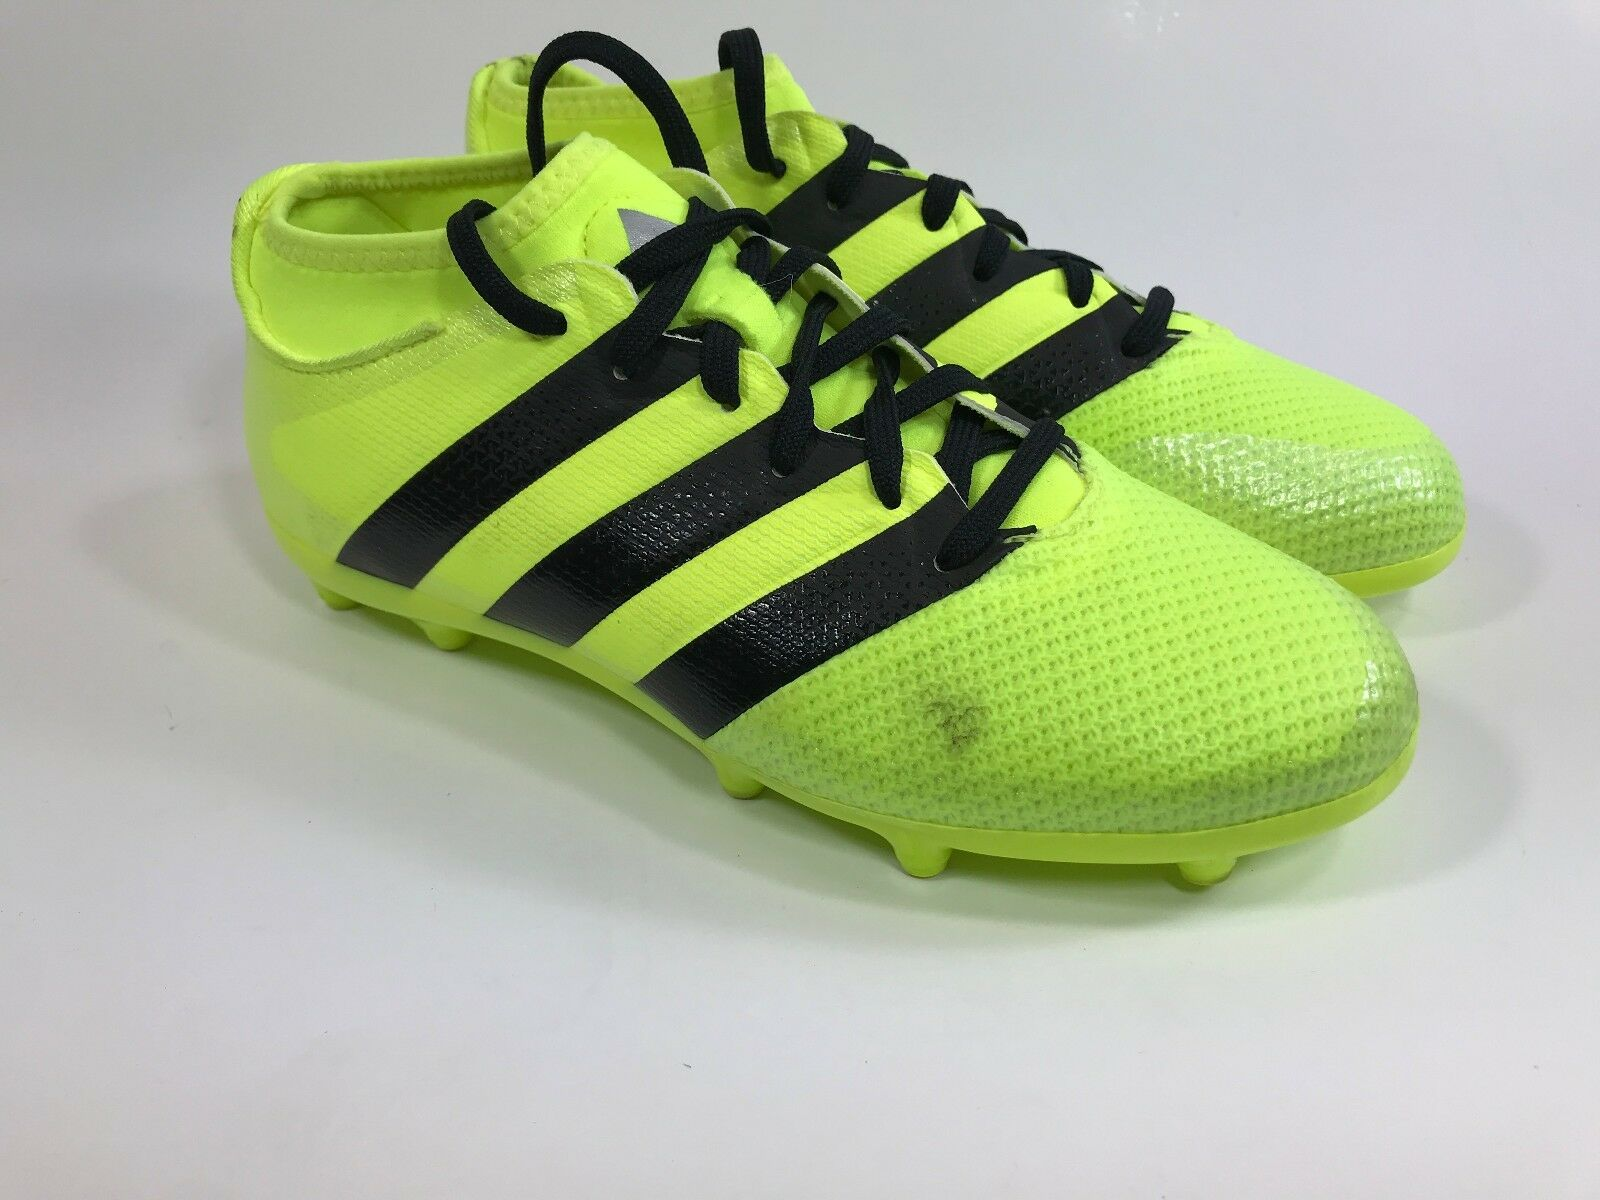 f807b19cd08 Adidas Ace 16.3 Primemesh FG Kids Soccer Cleats Neon Yellow Size 4.5 ...